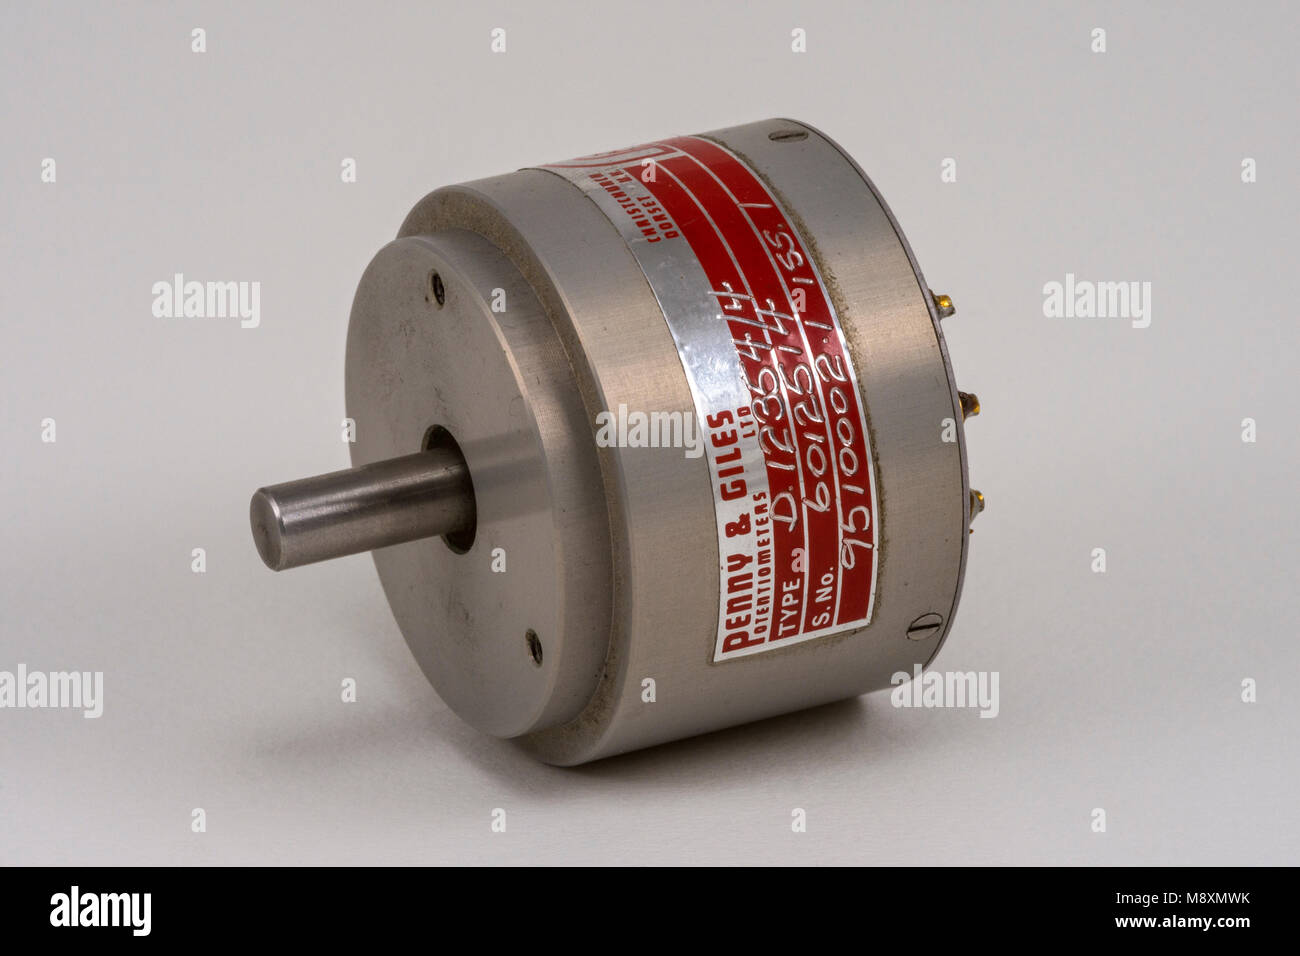 A Penny and Giles ultra low torque industrial precision potentiometer. - Stock Image